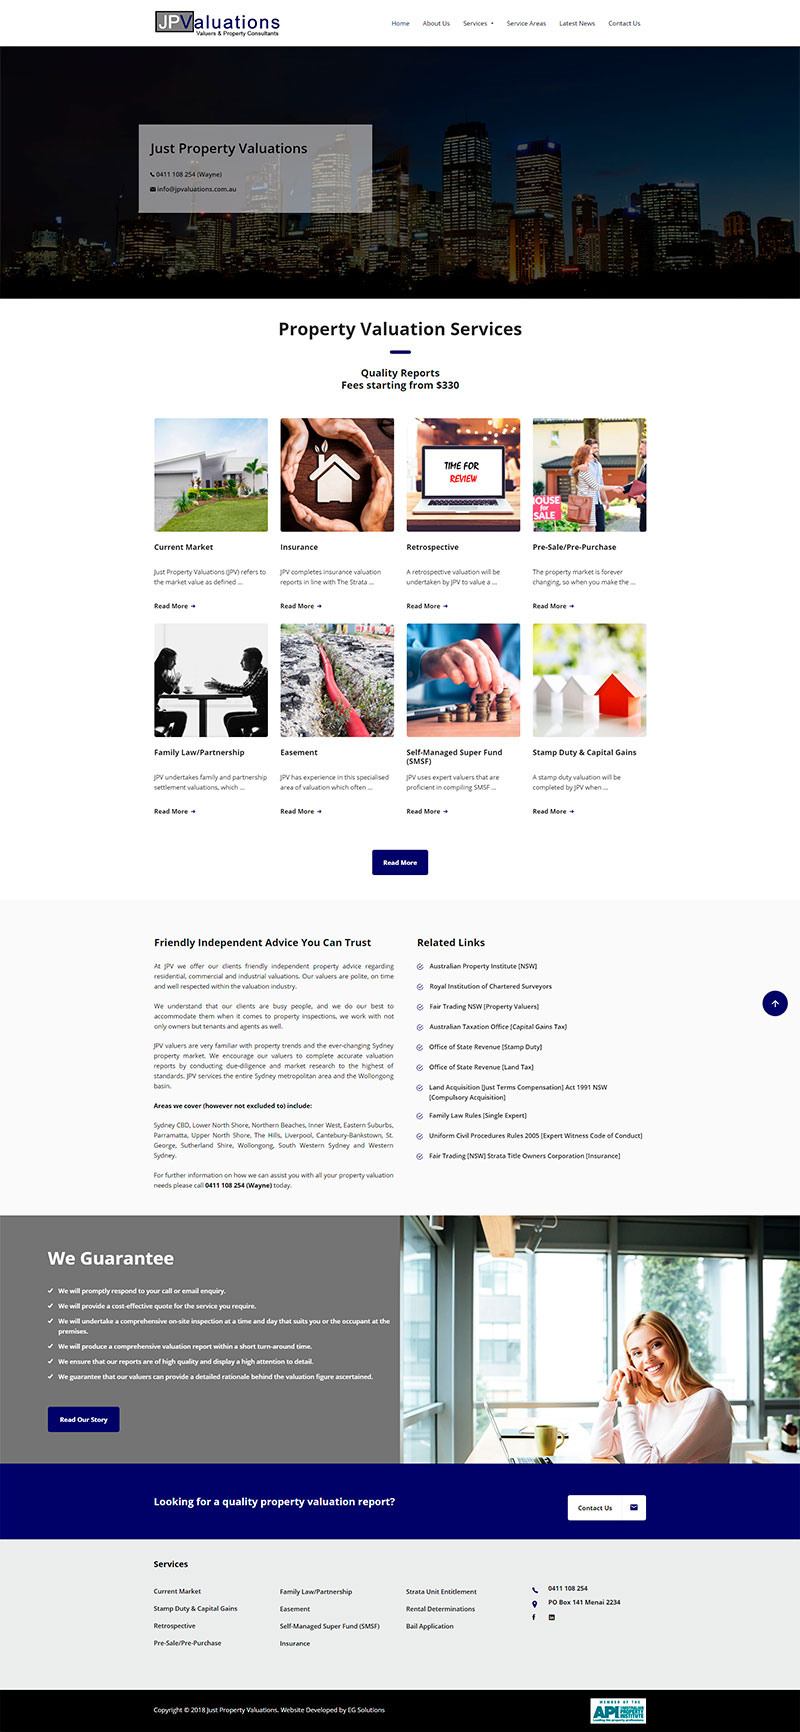 Just Property Valuations Homepage Design